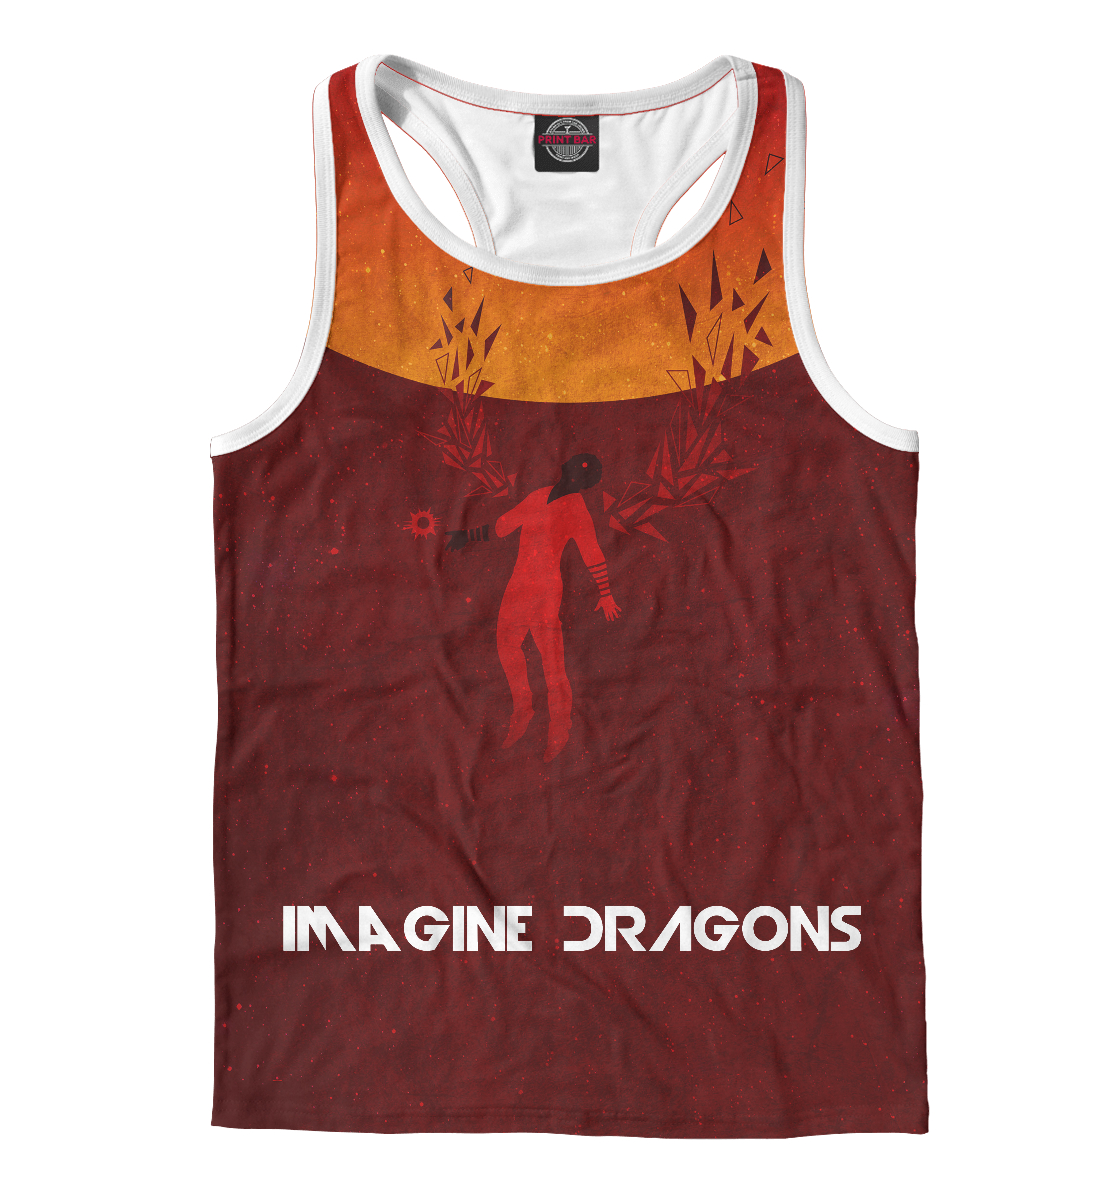 Купить Imagine Dragons, Printbar, Майки борцовки, IMA-244101-mayb-2